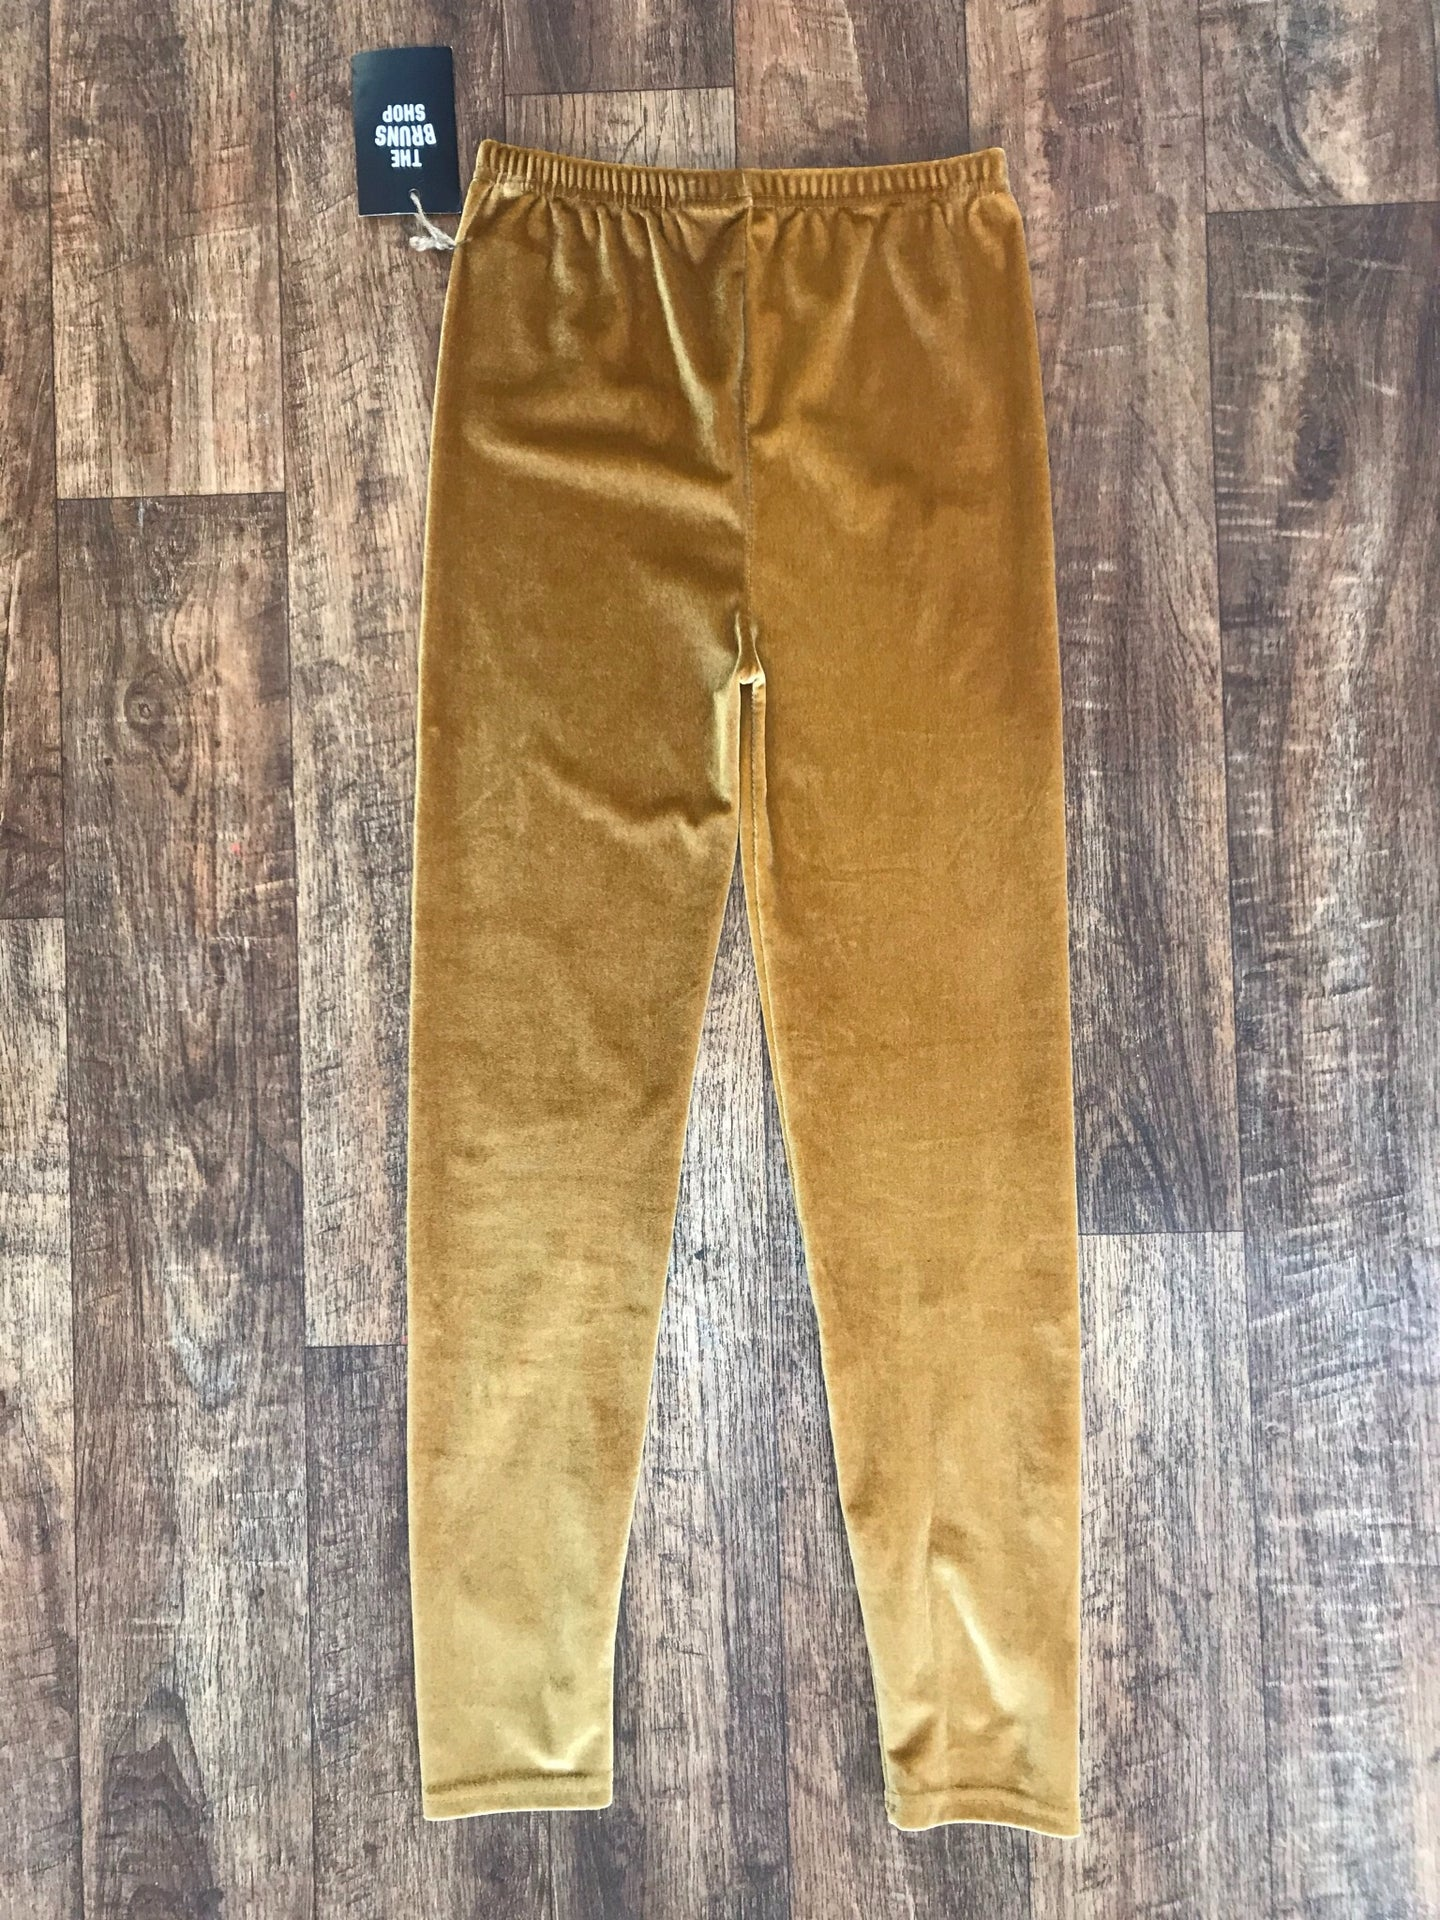 Pre-loved Velvet Leggings - XSmall